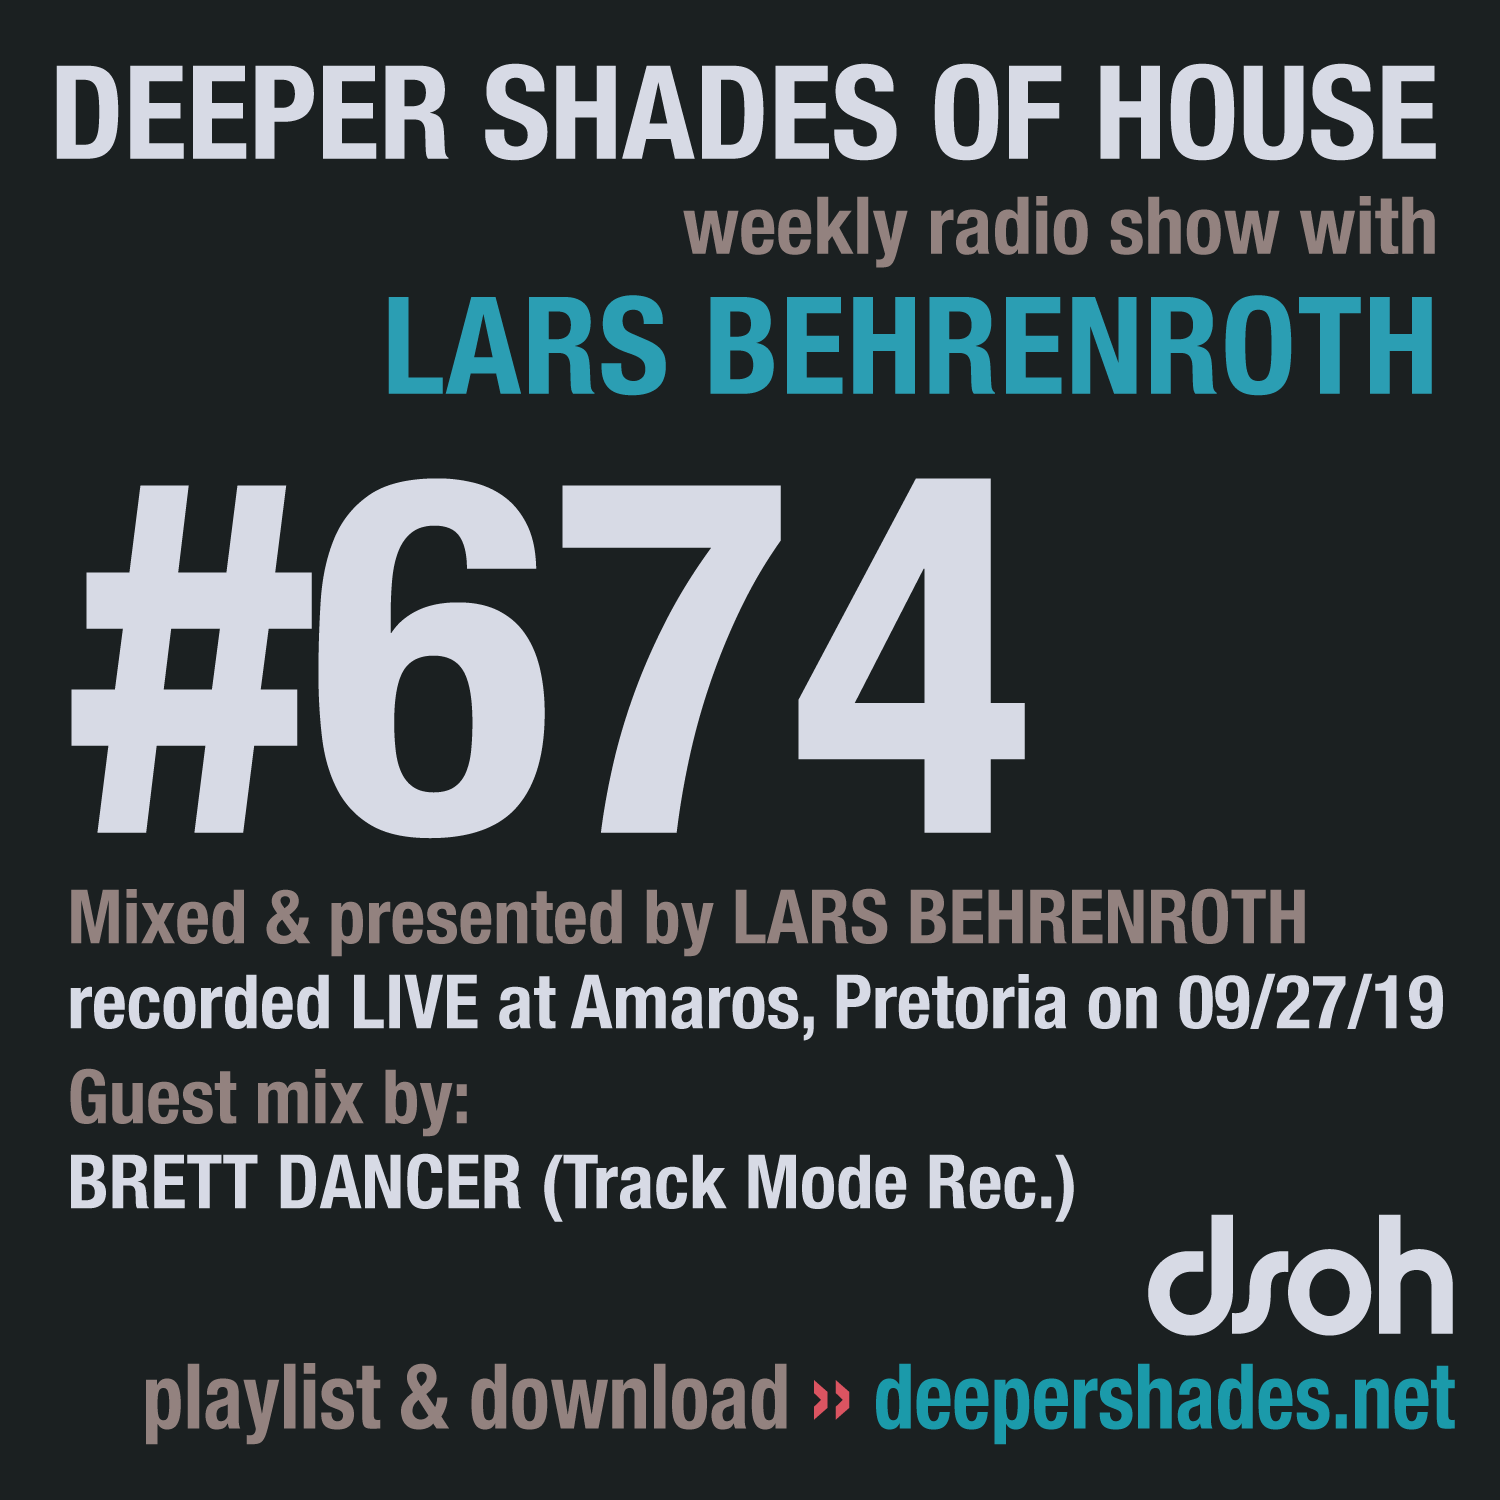 Deeper Shades Of House 674